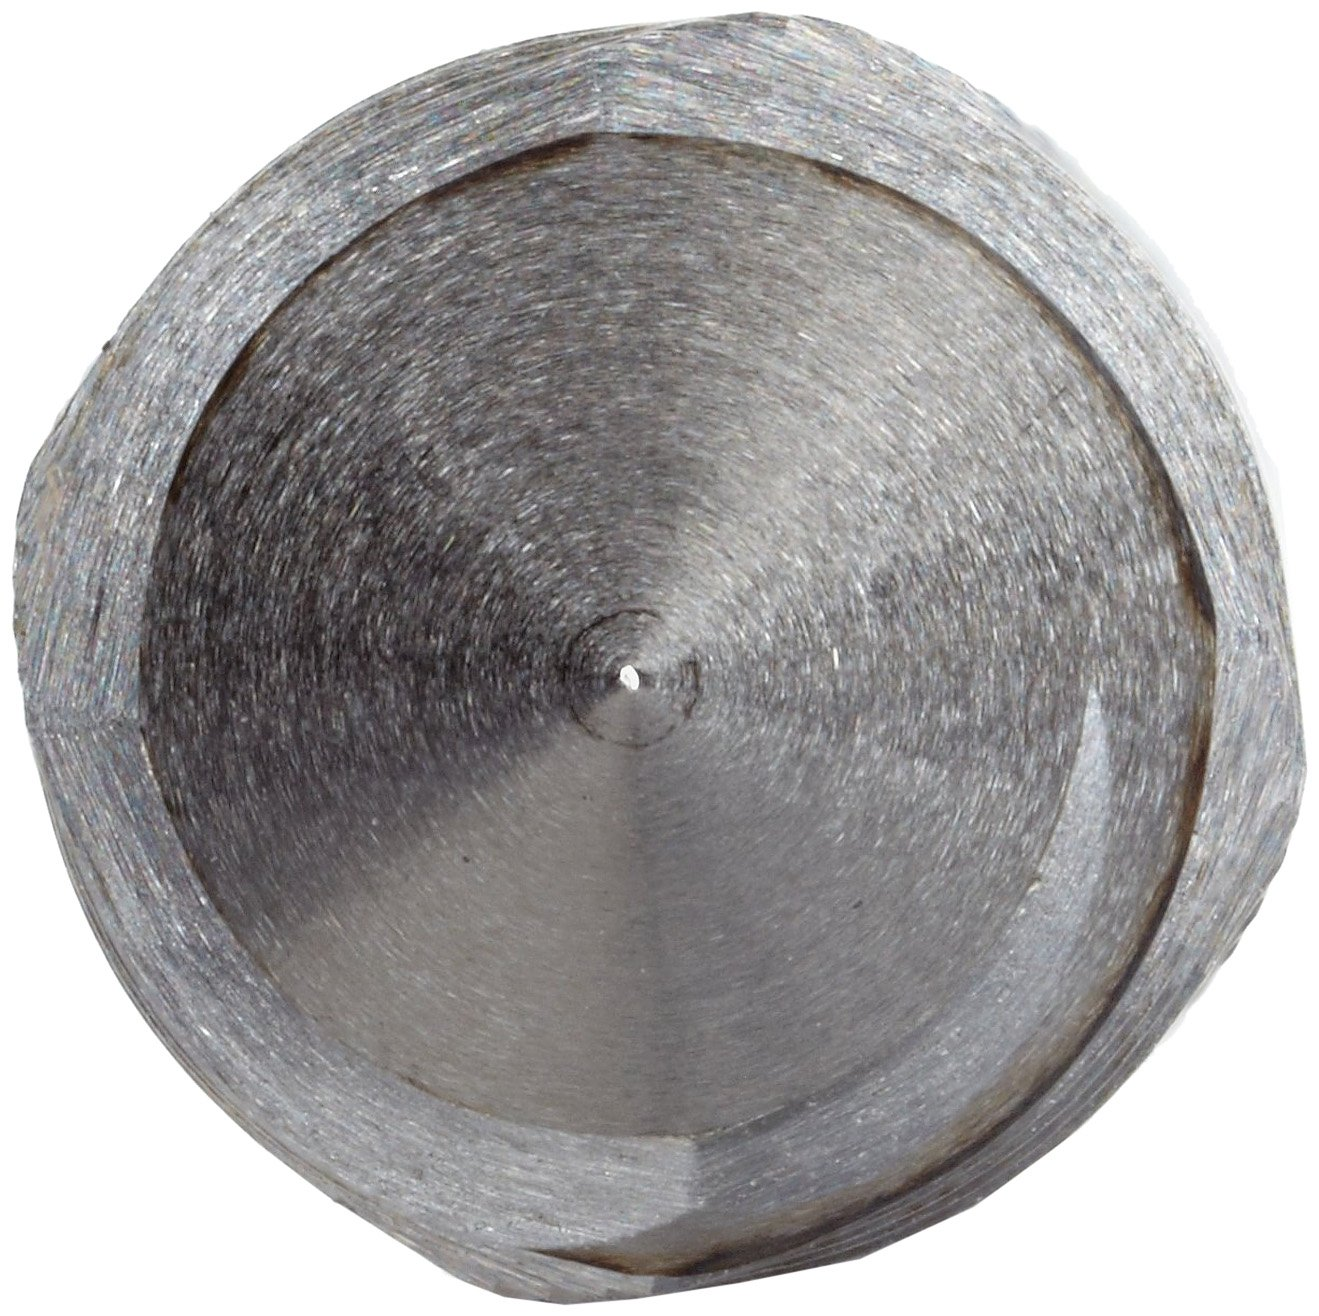 Bright 7//16-20 Thread Size Bottoming Chamfer Uncoated H5 Tolerance Union Butterfield 1580 UNF High-Speed Steel Thread Forming Tap Finish Round Shank With Square End